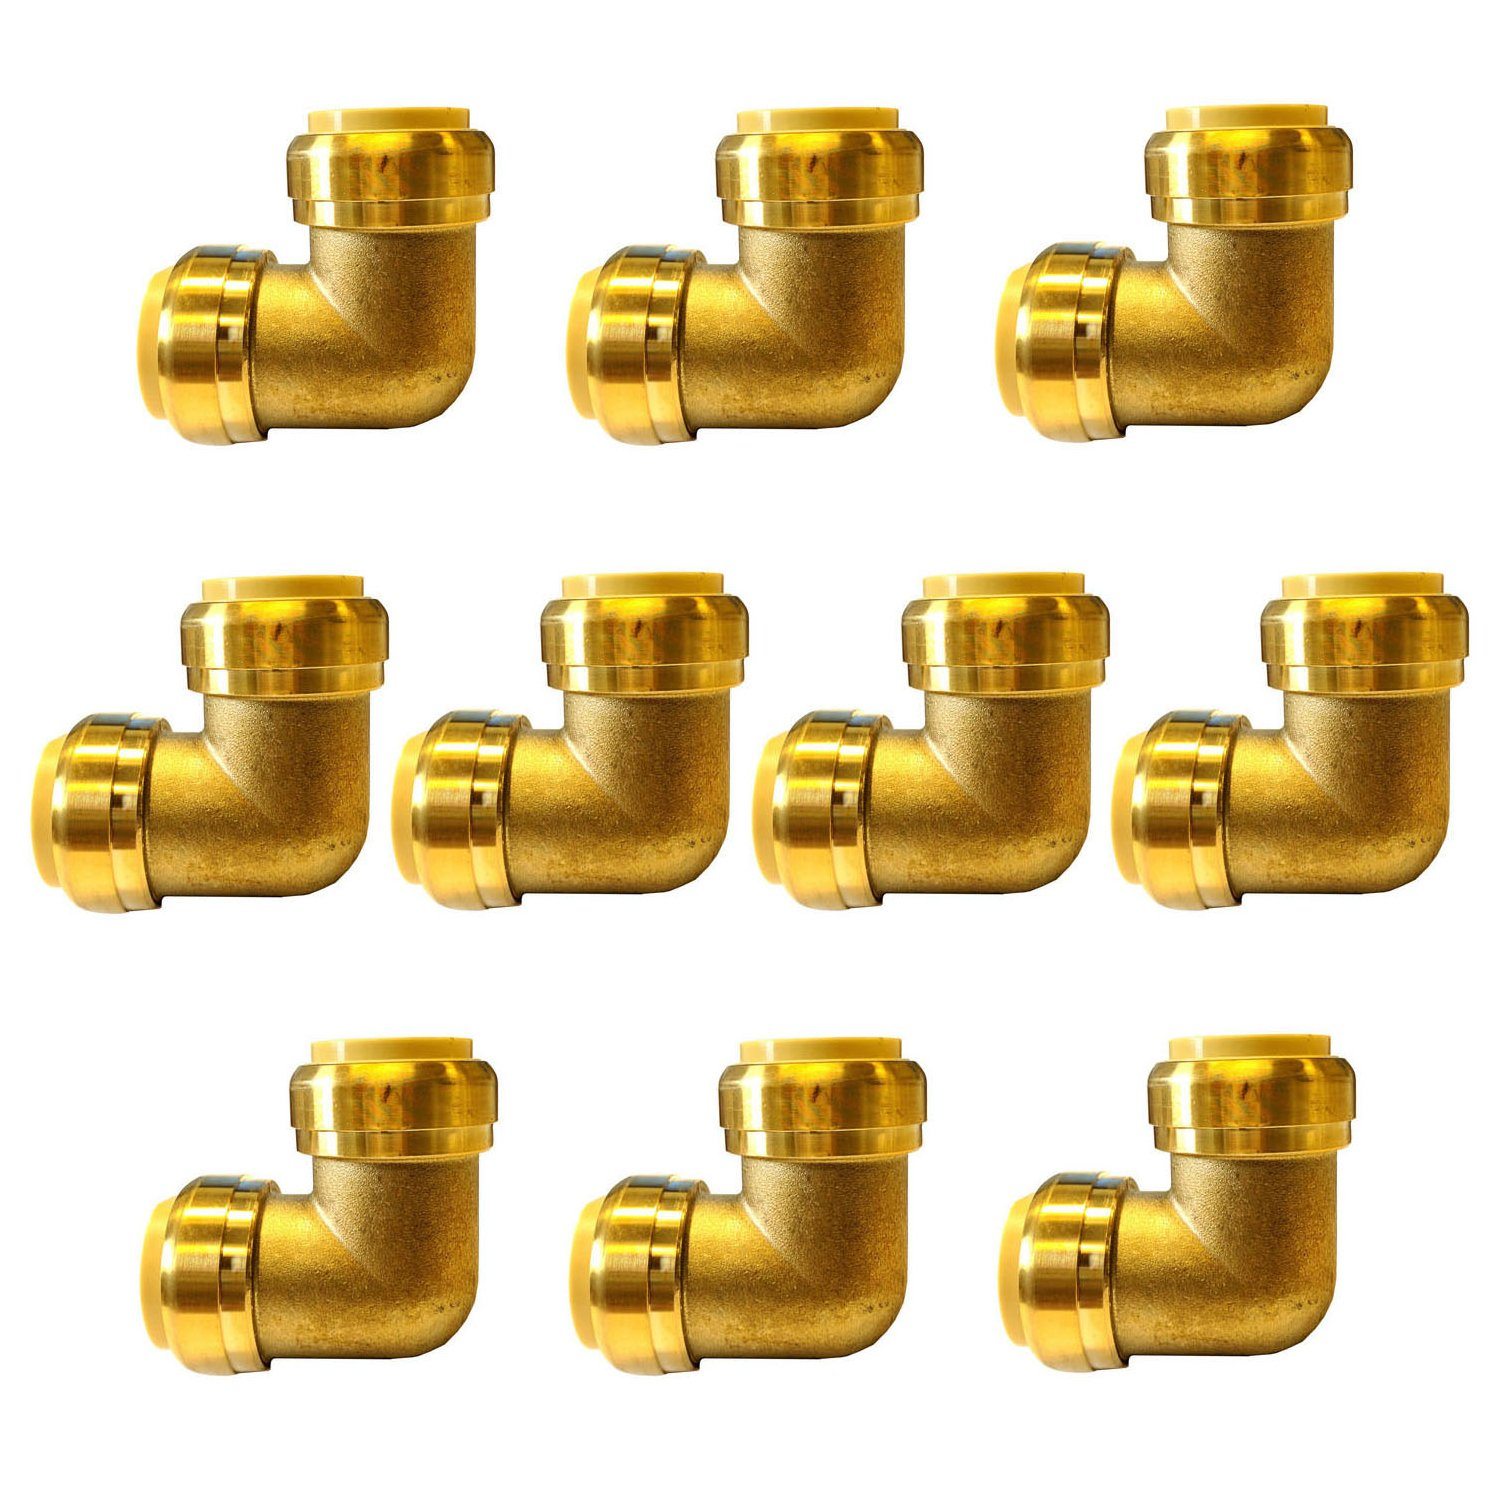 1 2 Push Fit Elbow Fitting 90 Degree Lead Free Brass Push To